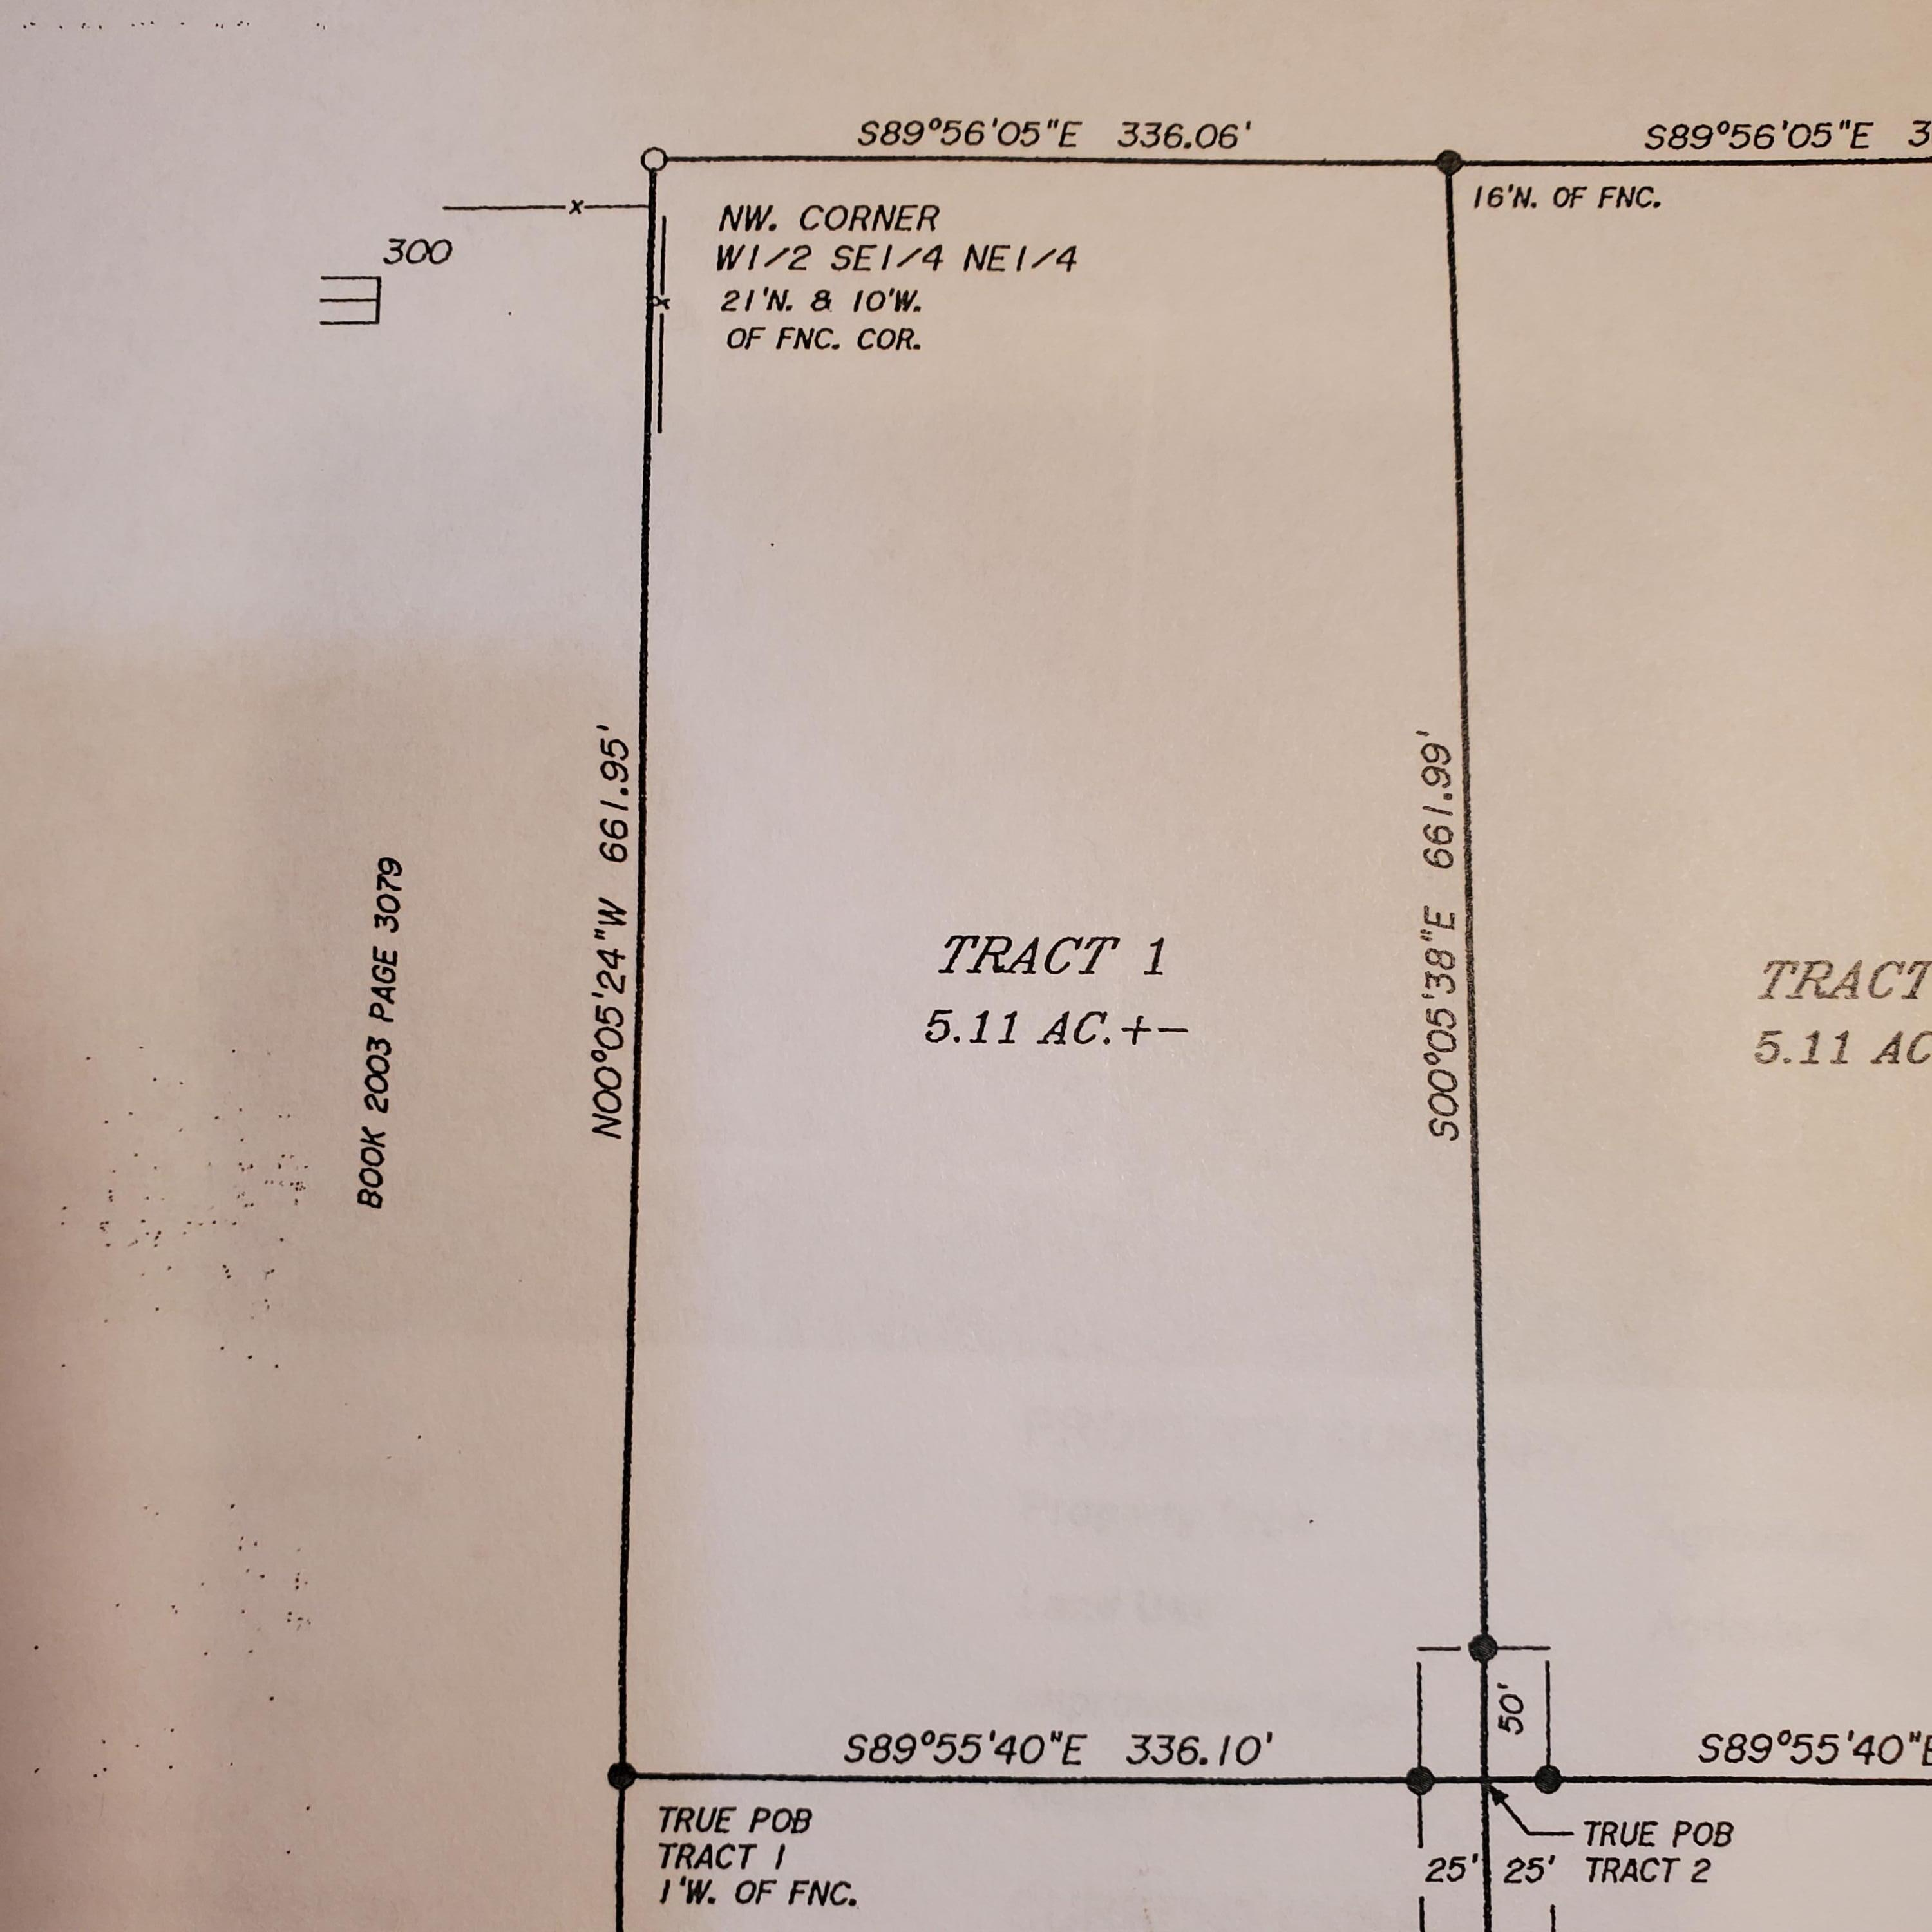 5 Ac Tract 1 Delzell Road Rogersville, MO 65742